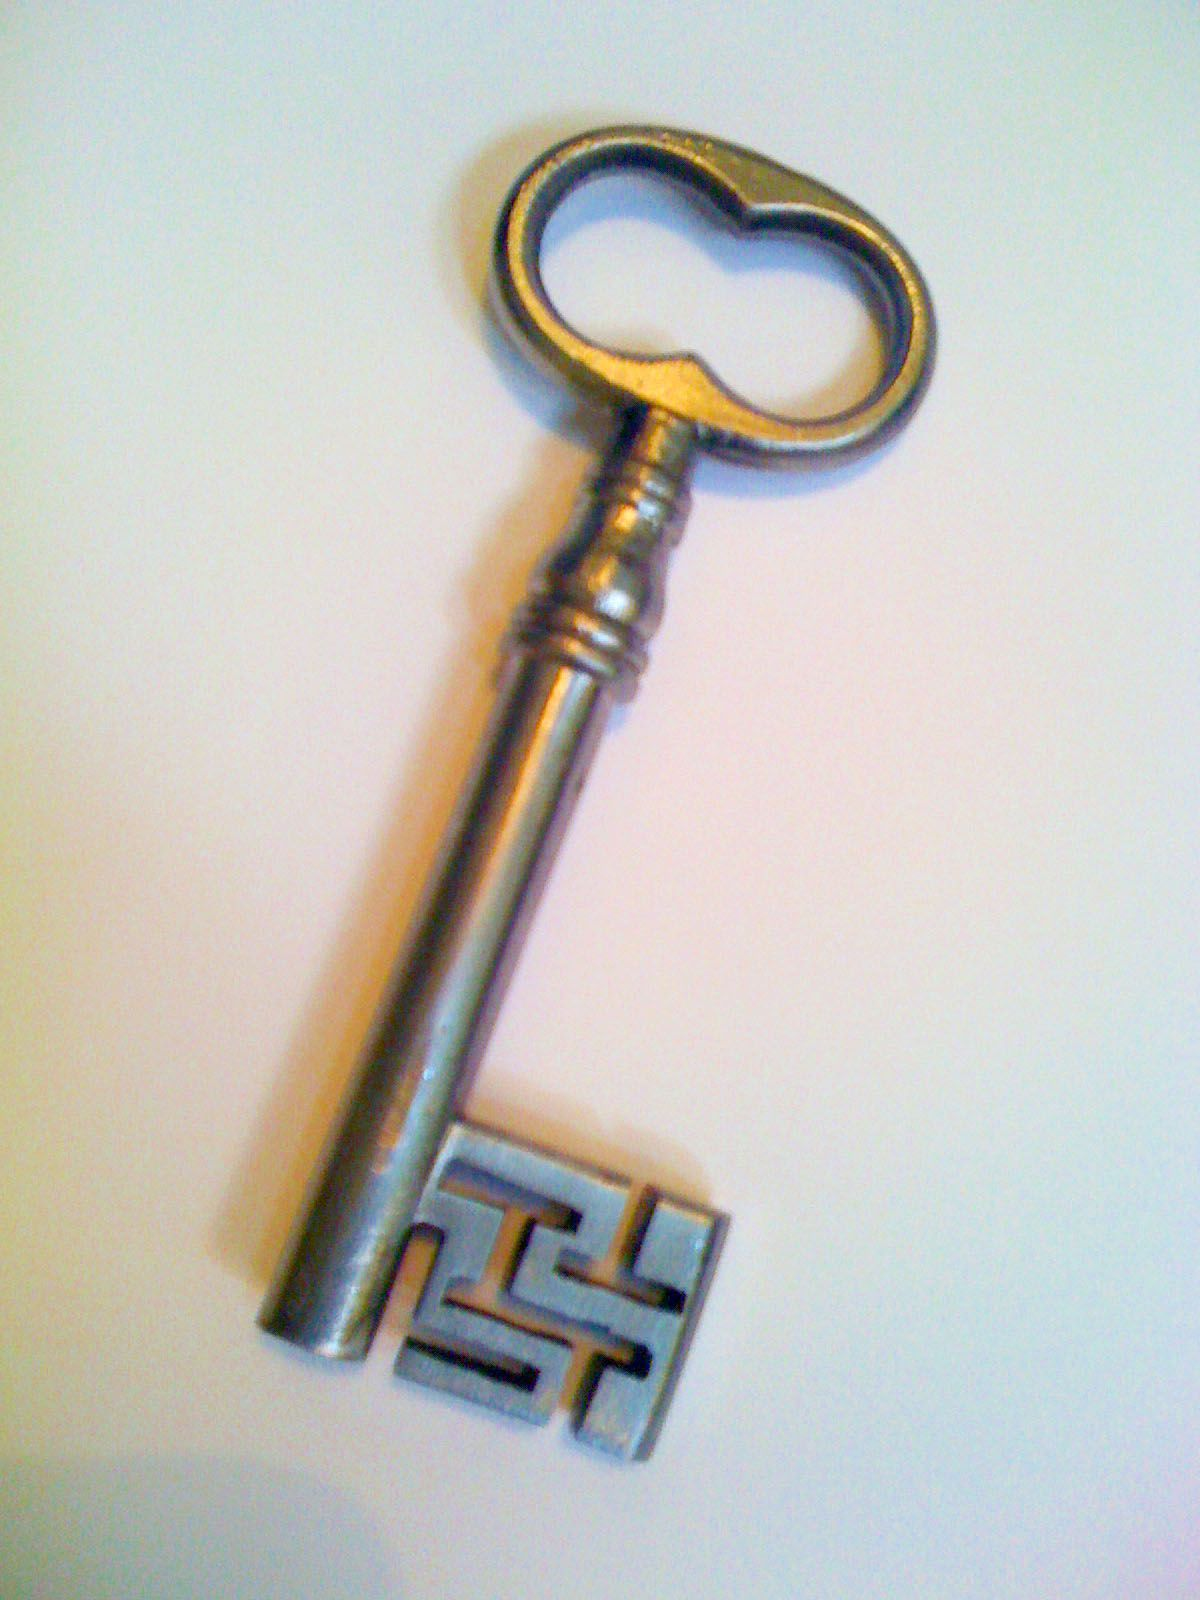 One Of Our Hand Made Keys To An Old Sea Chest Standfast Security Margate Kent Old Keys Skeleton Key Lock Key